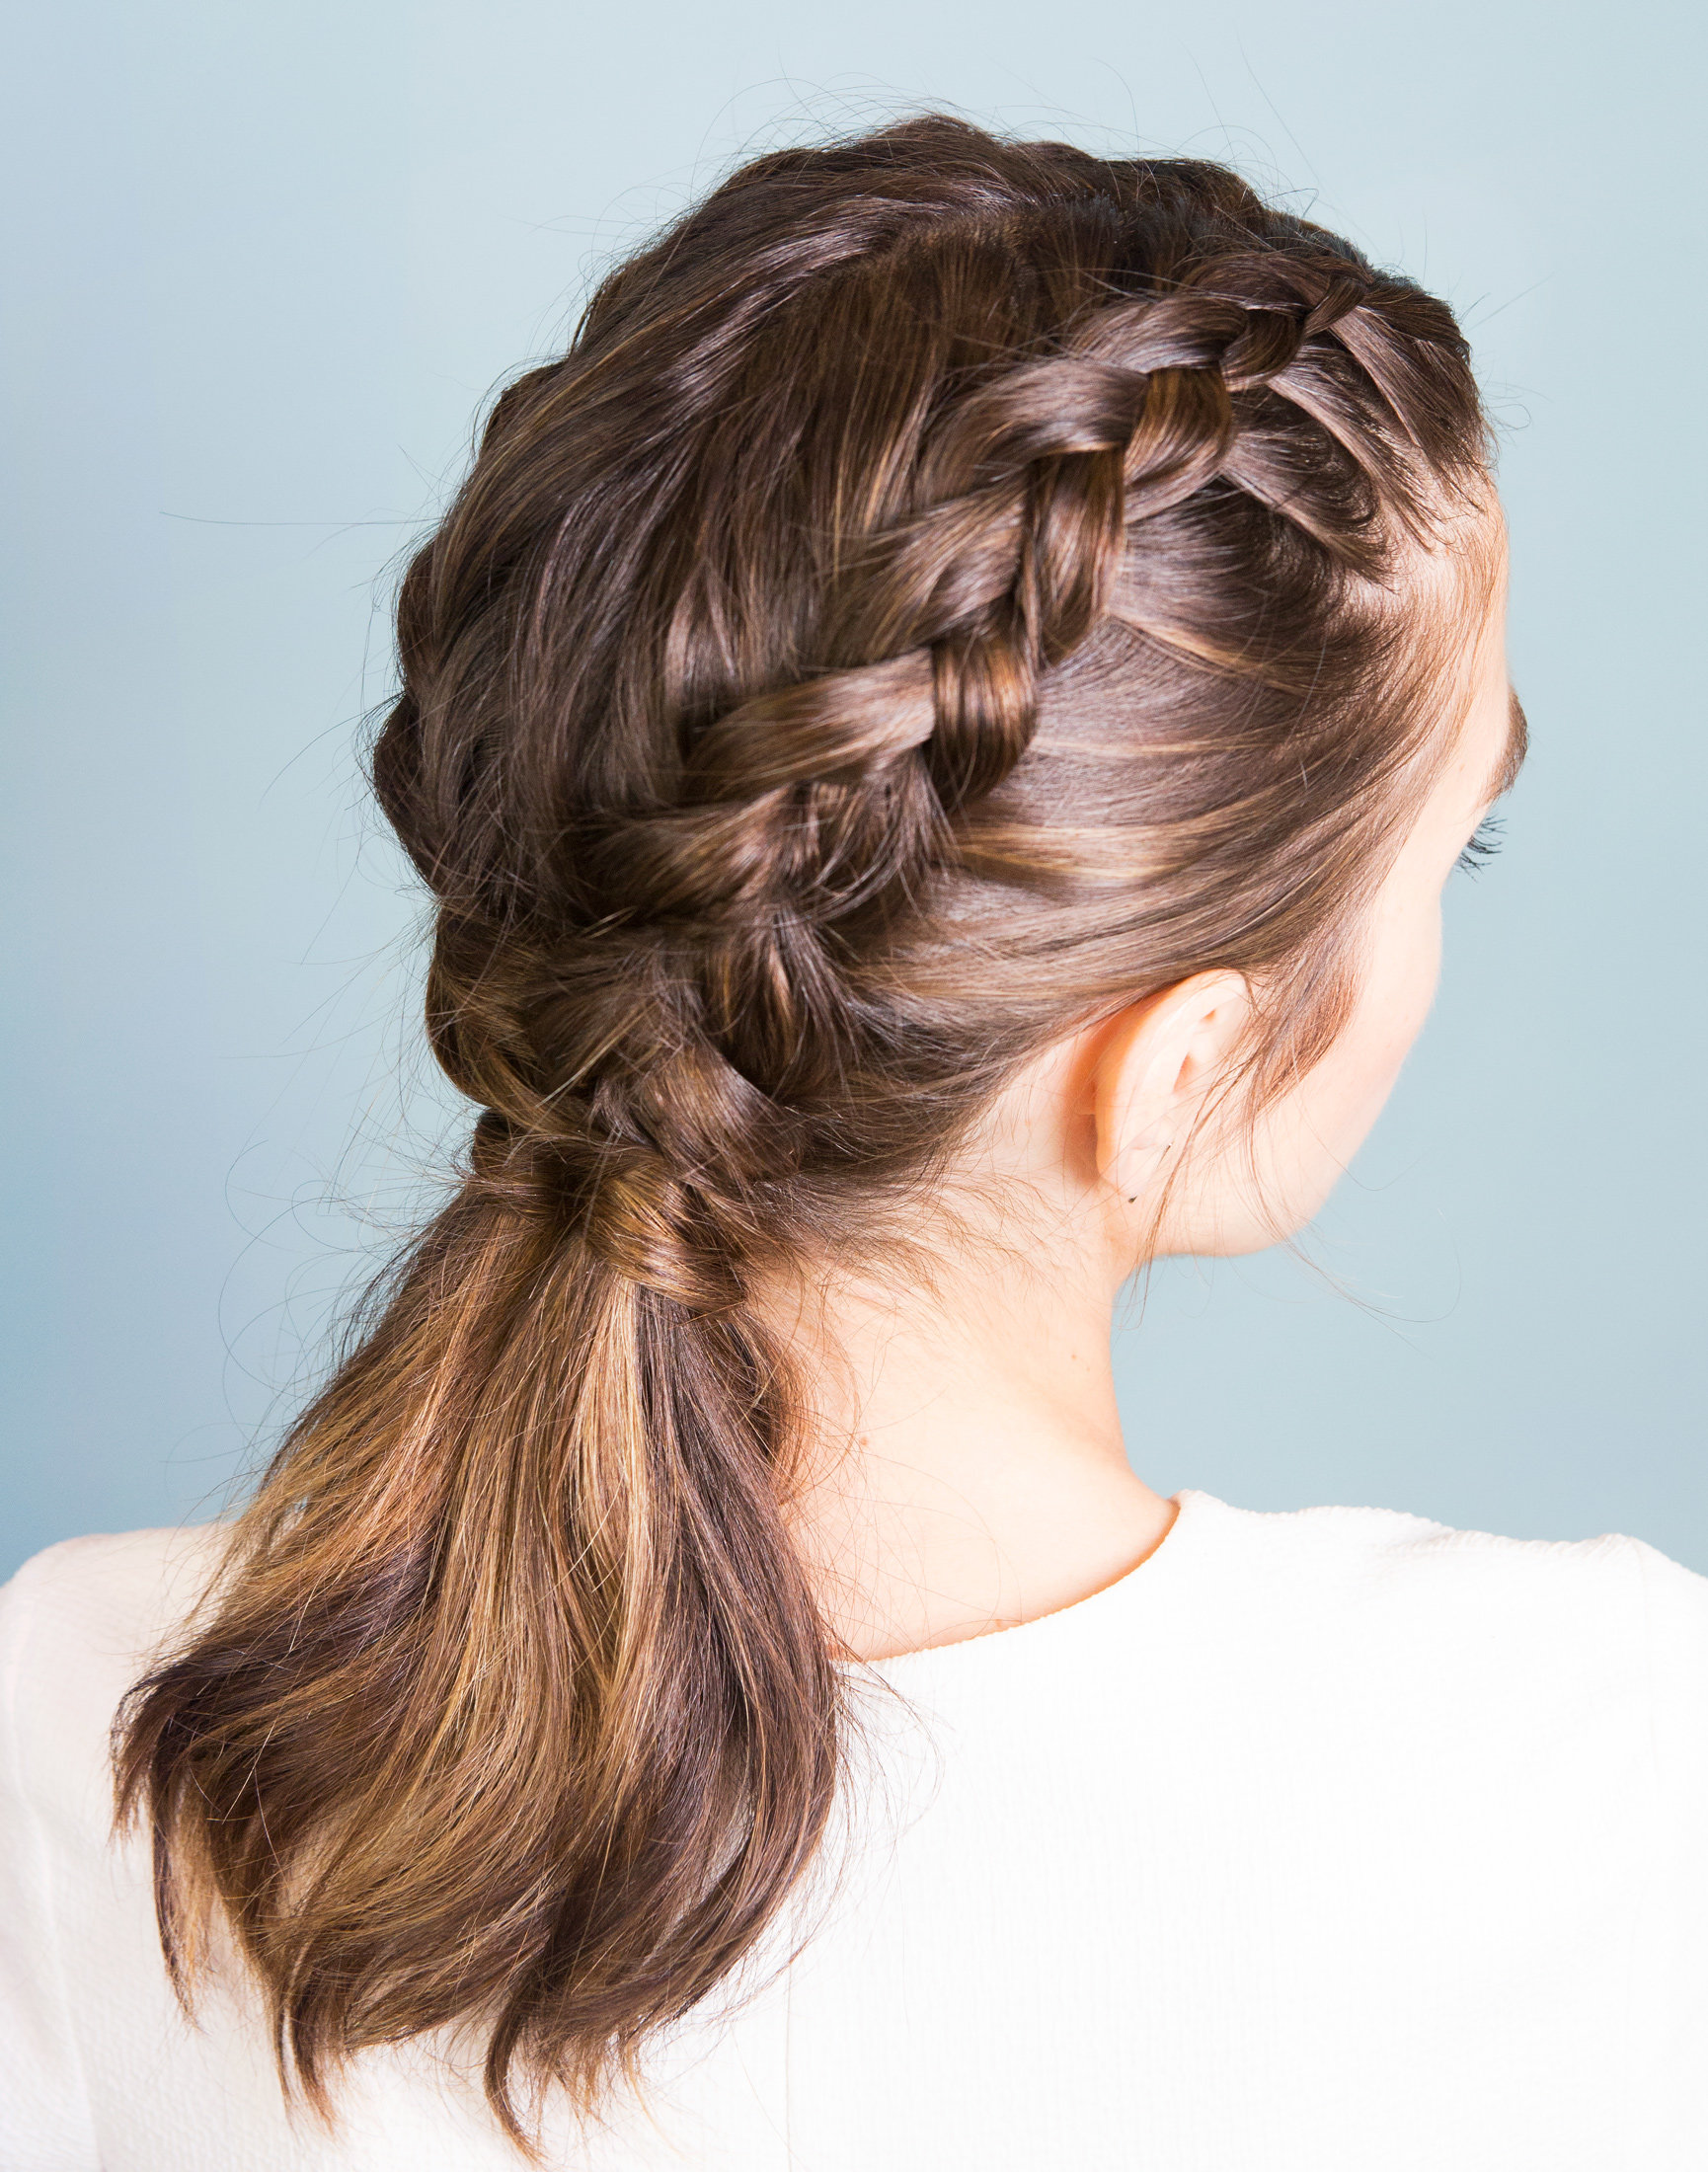 Learn How To Perfect Inverted French Braids With This Stepbystep Gif